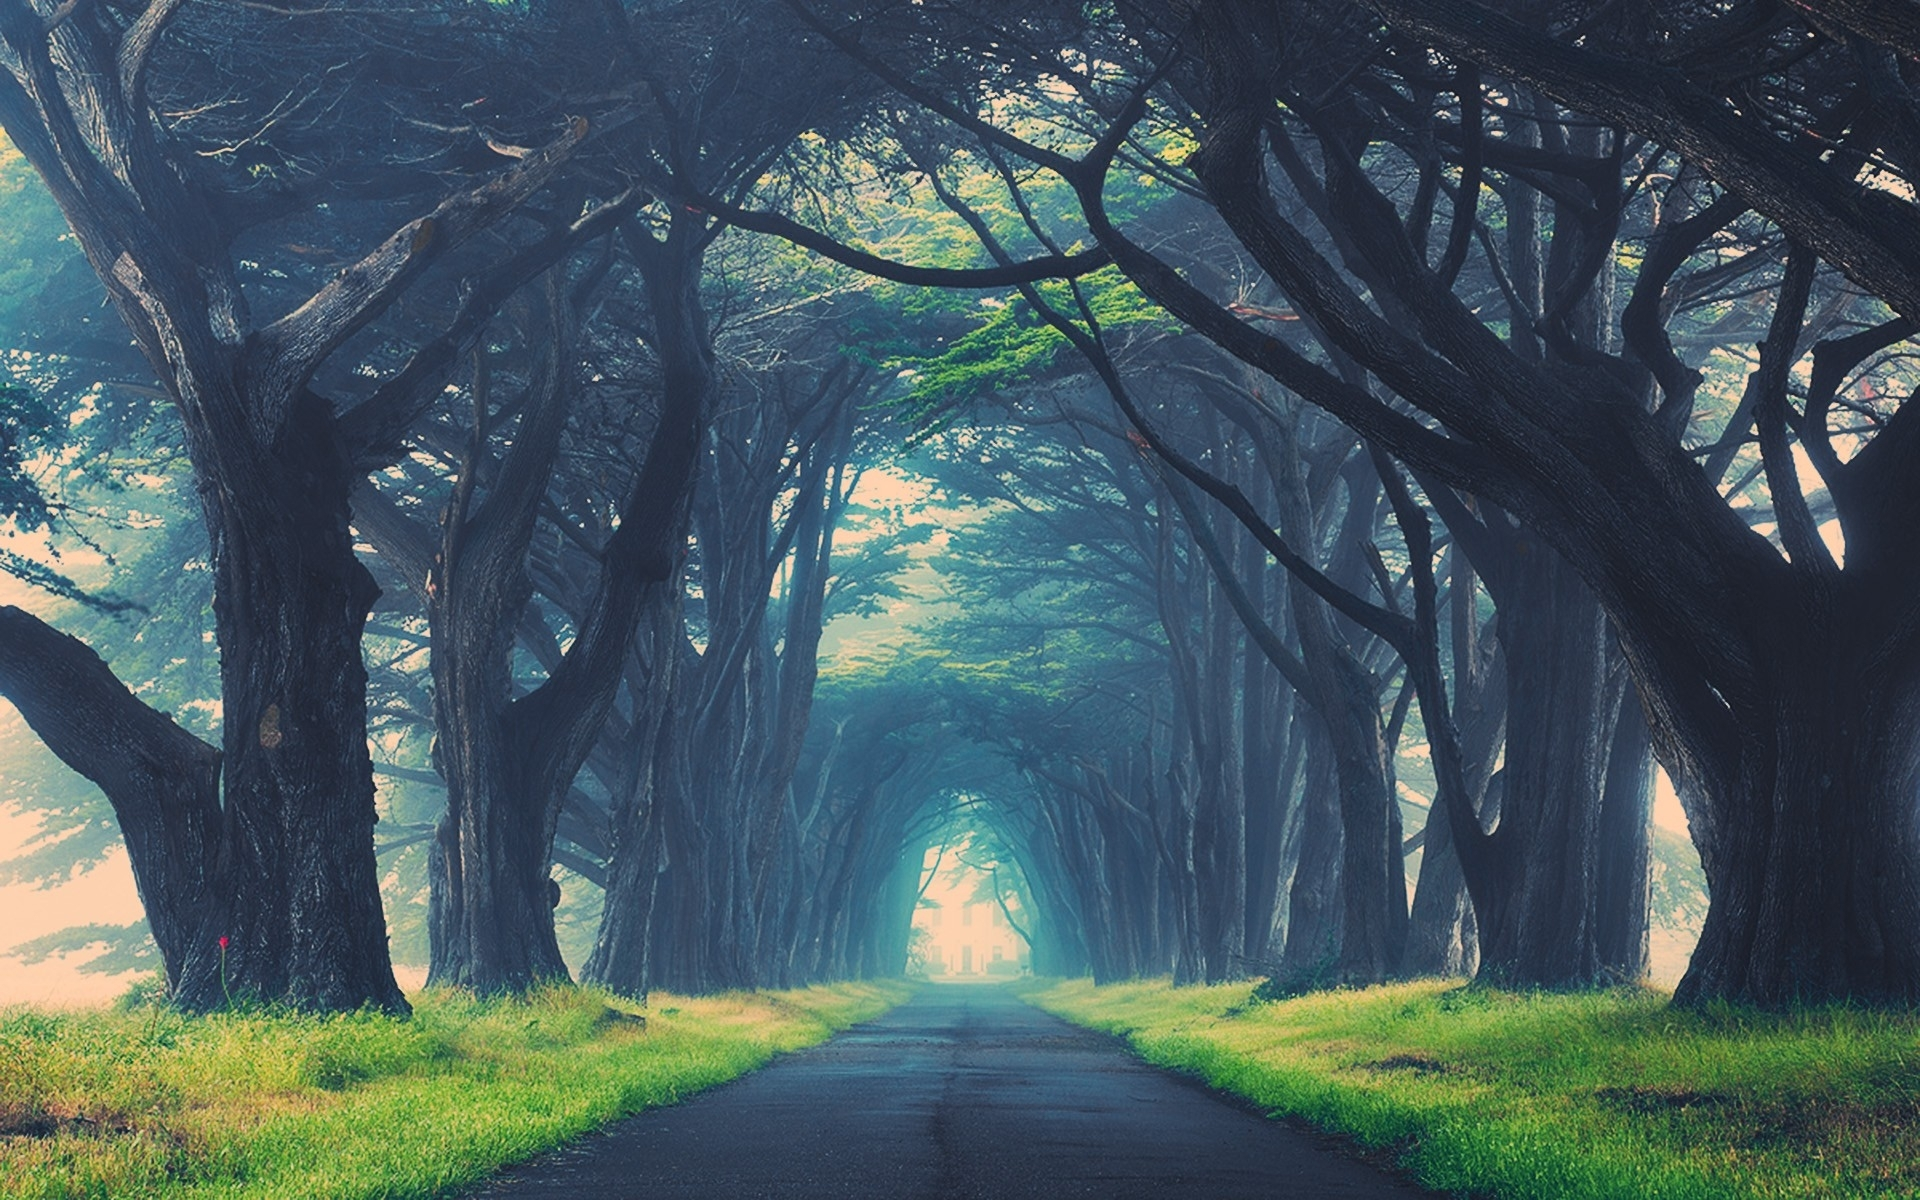 Dark Trees Hd Wallpapers: Dark Trees Avenue Stock Photos